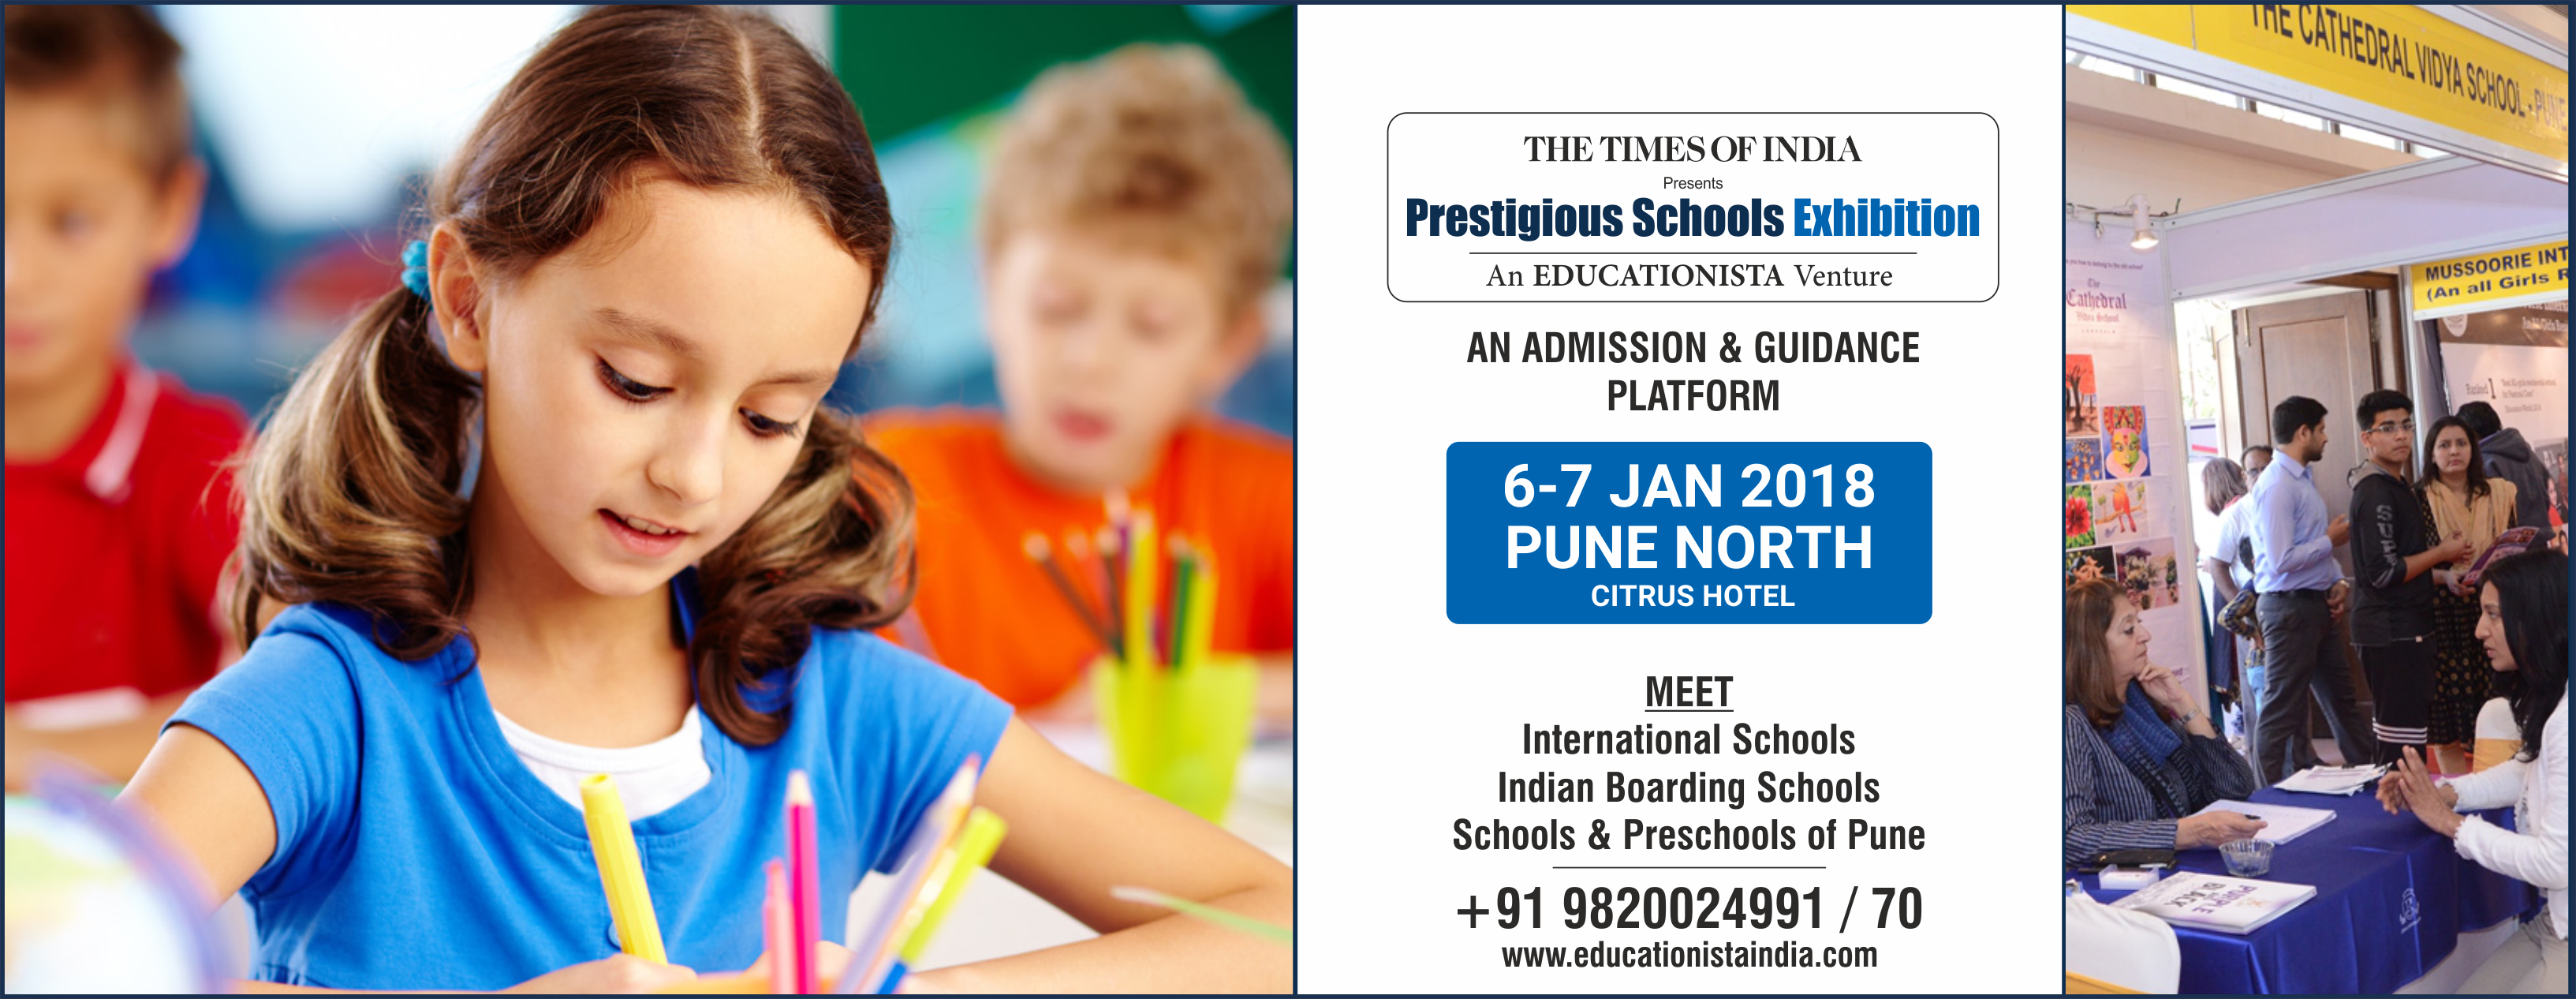 Times Prestigious Schools Exhibition'17 - Pune North